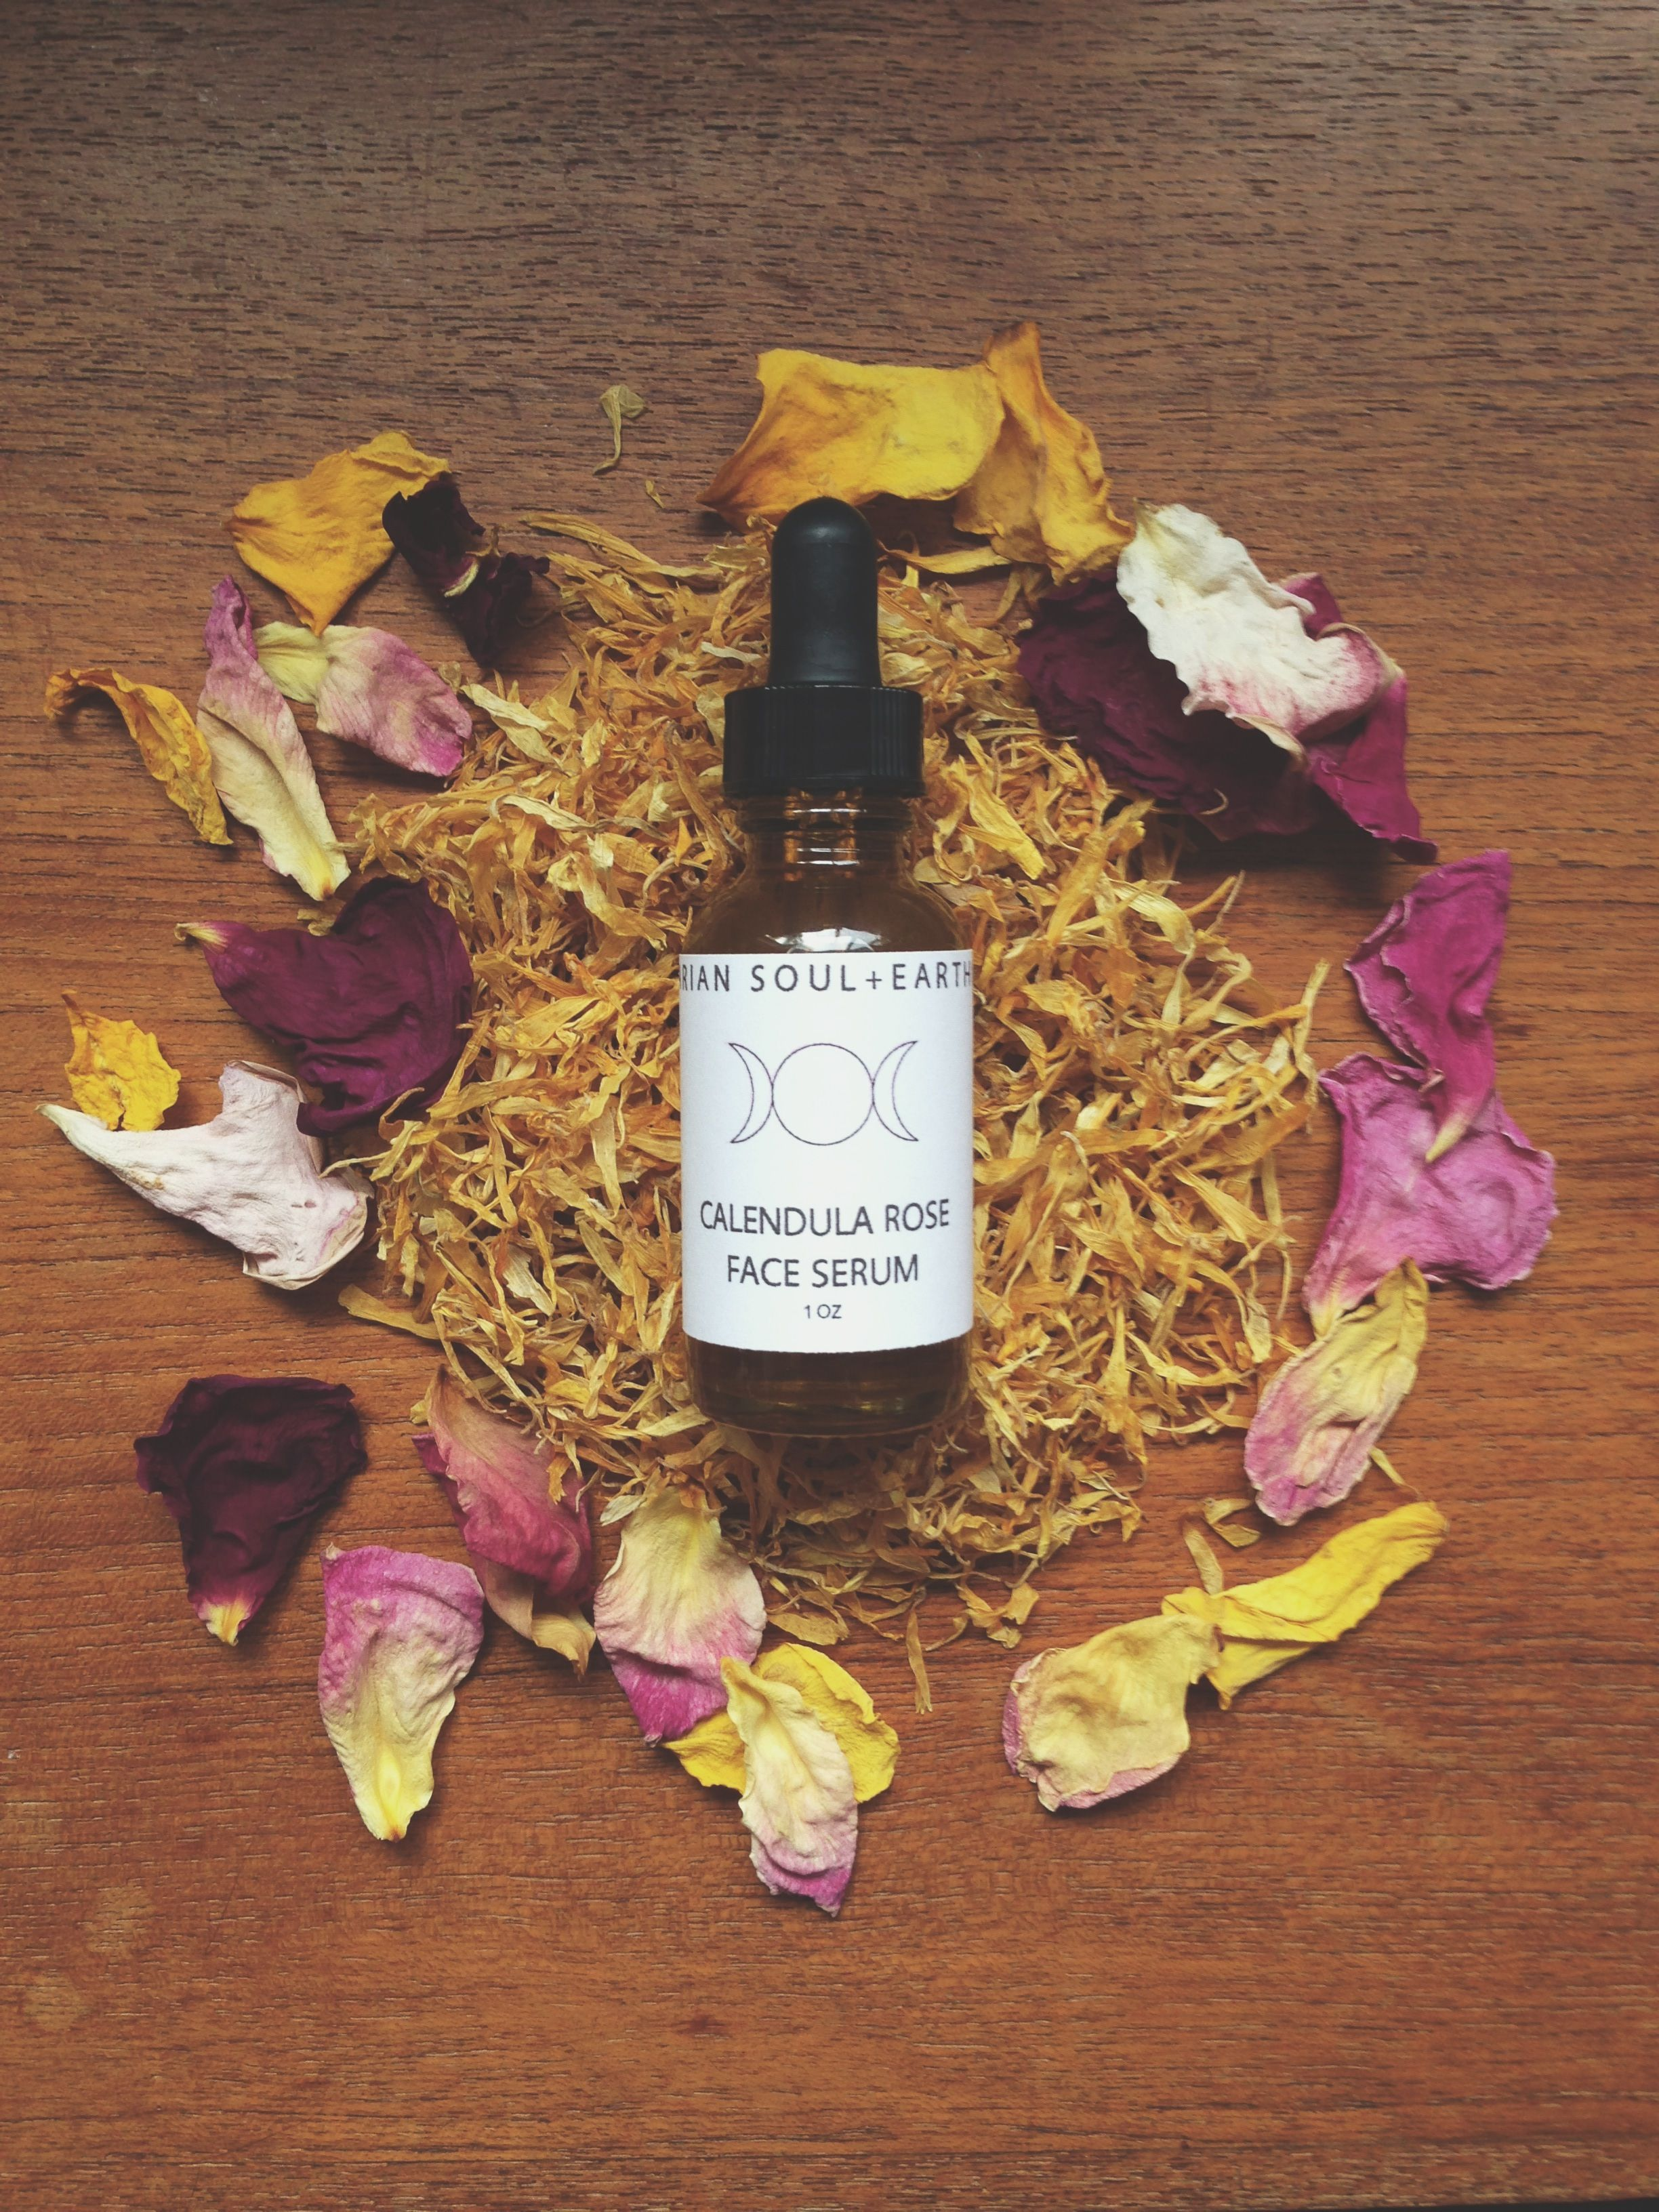 Aquarian Soul Earth Oils With Images Diy Natural Products Antioxidant Face Simple Skincare